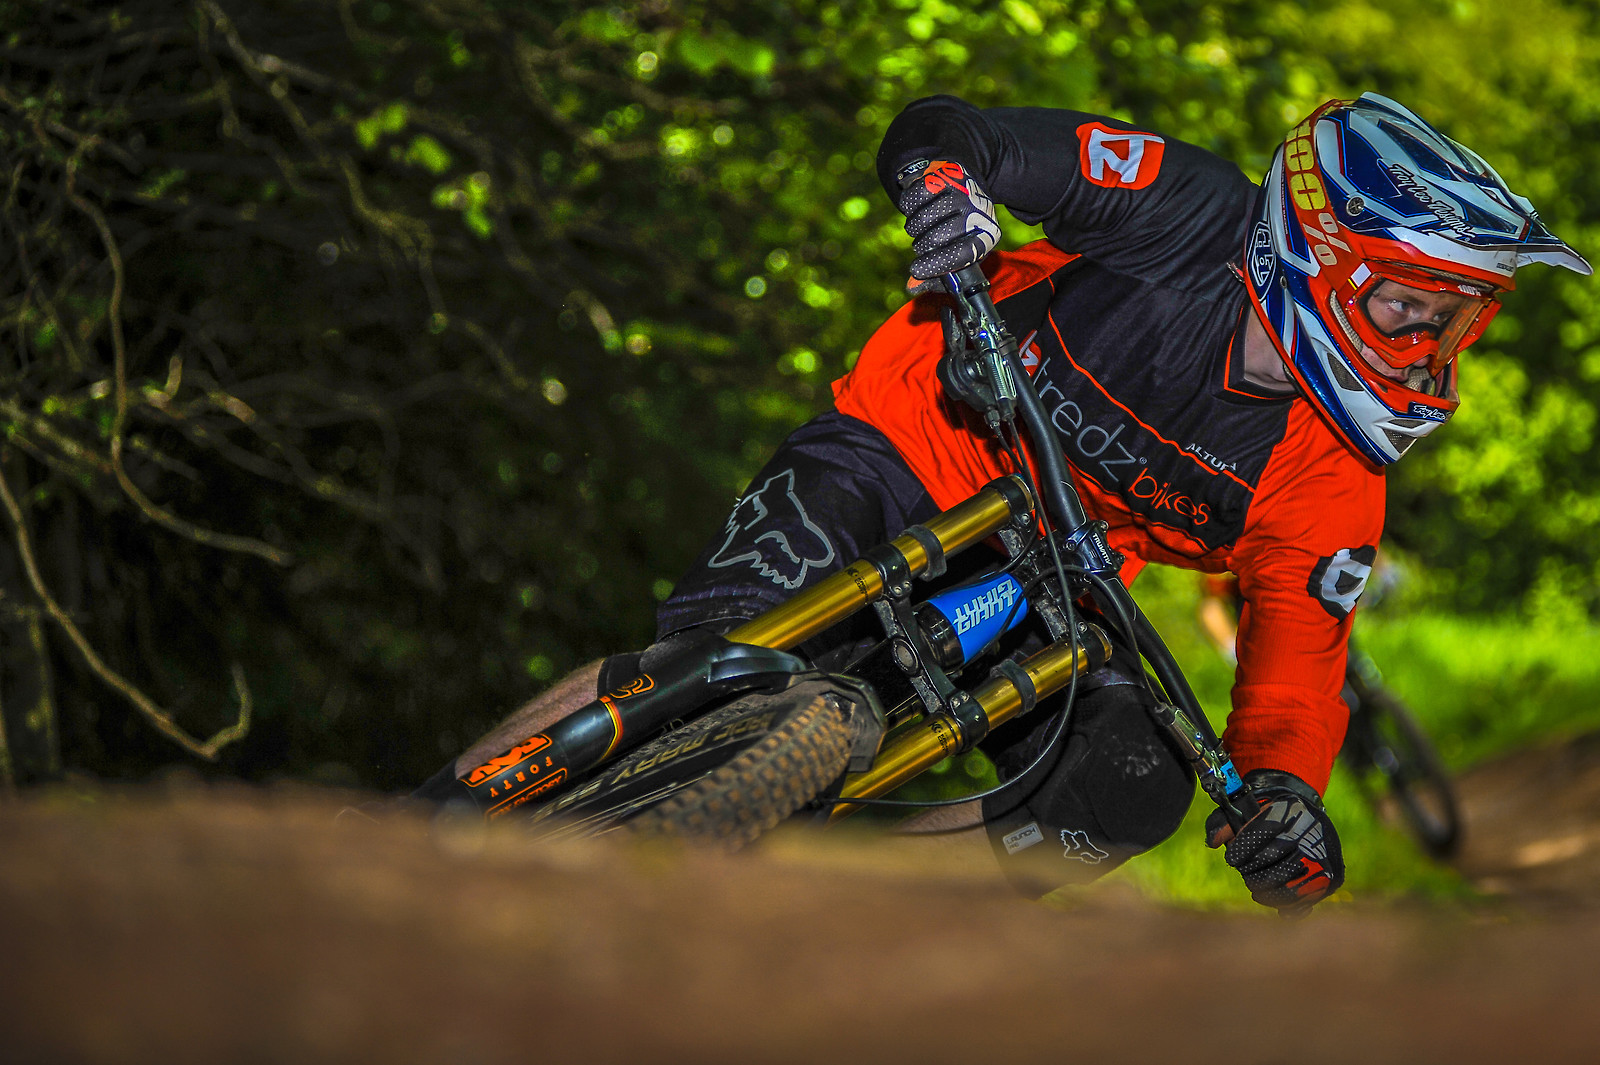 DSC8056 - robbarkerimages2017 - Mountain Biking Pictures - Vital MTB